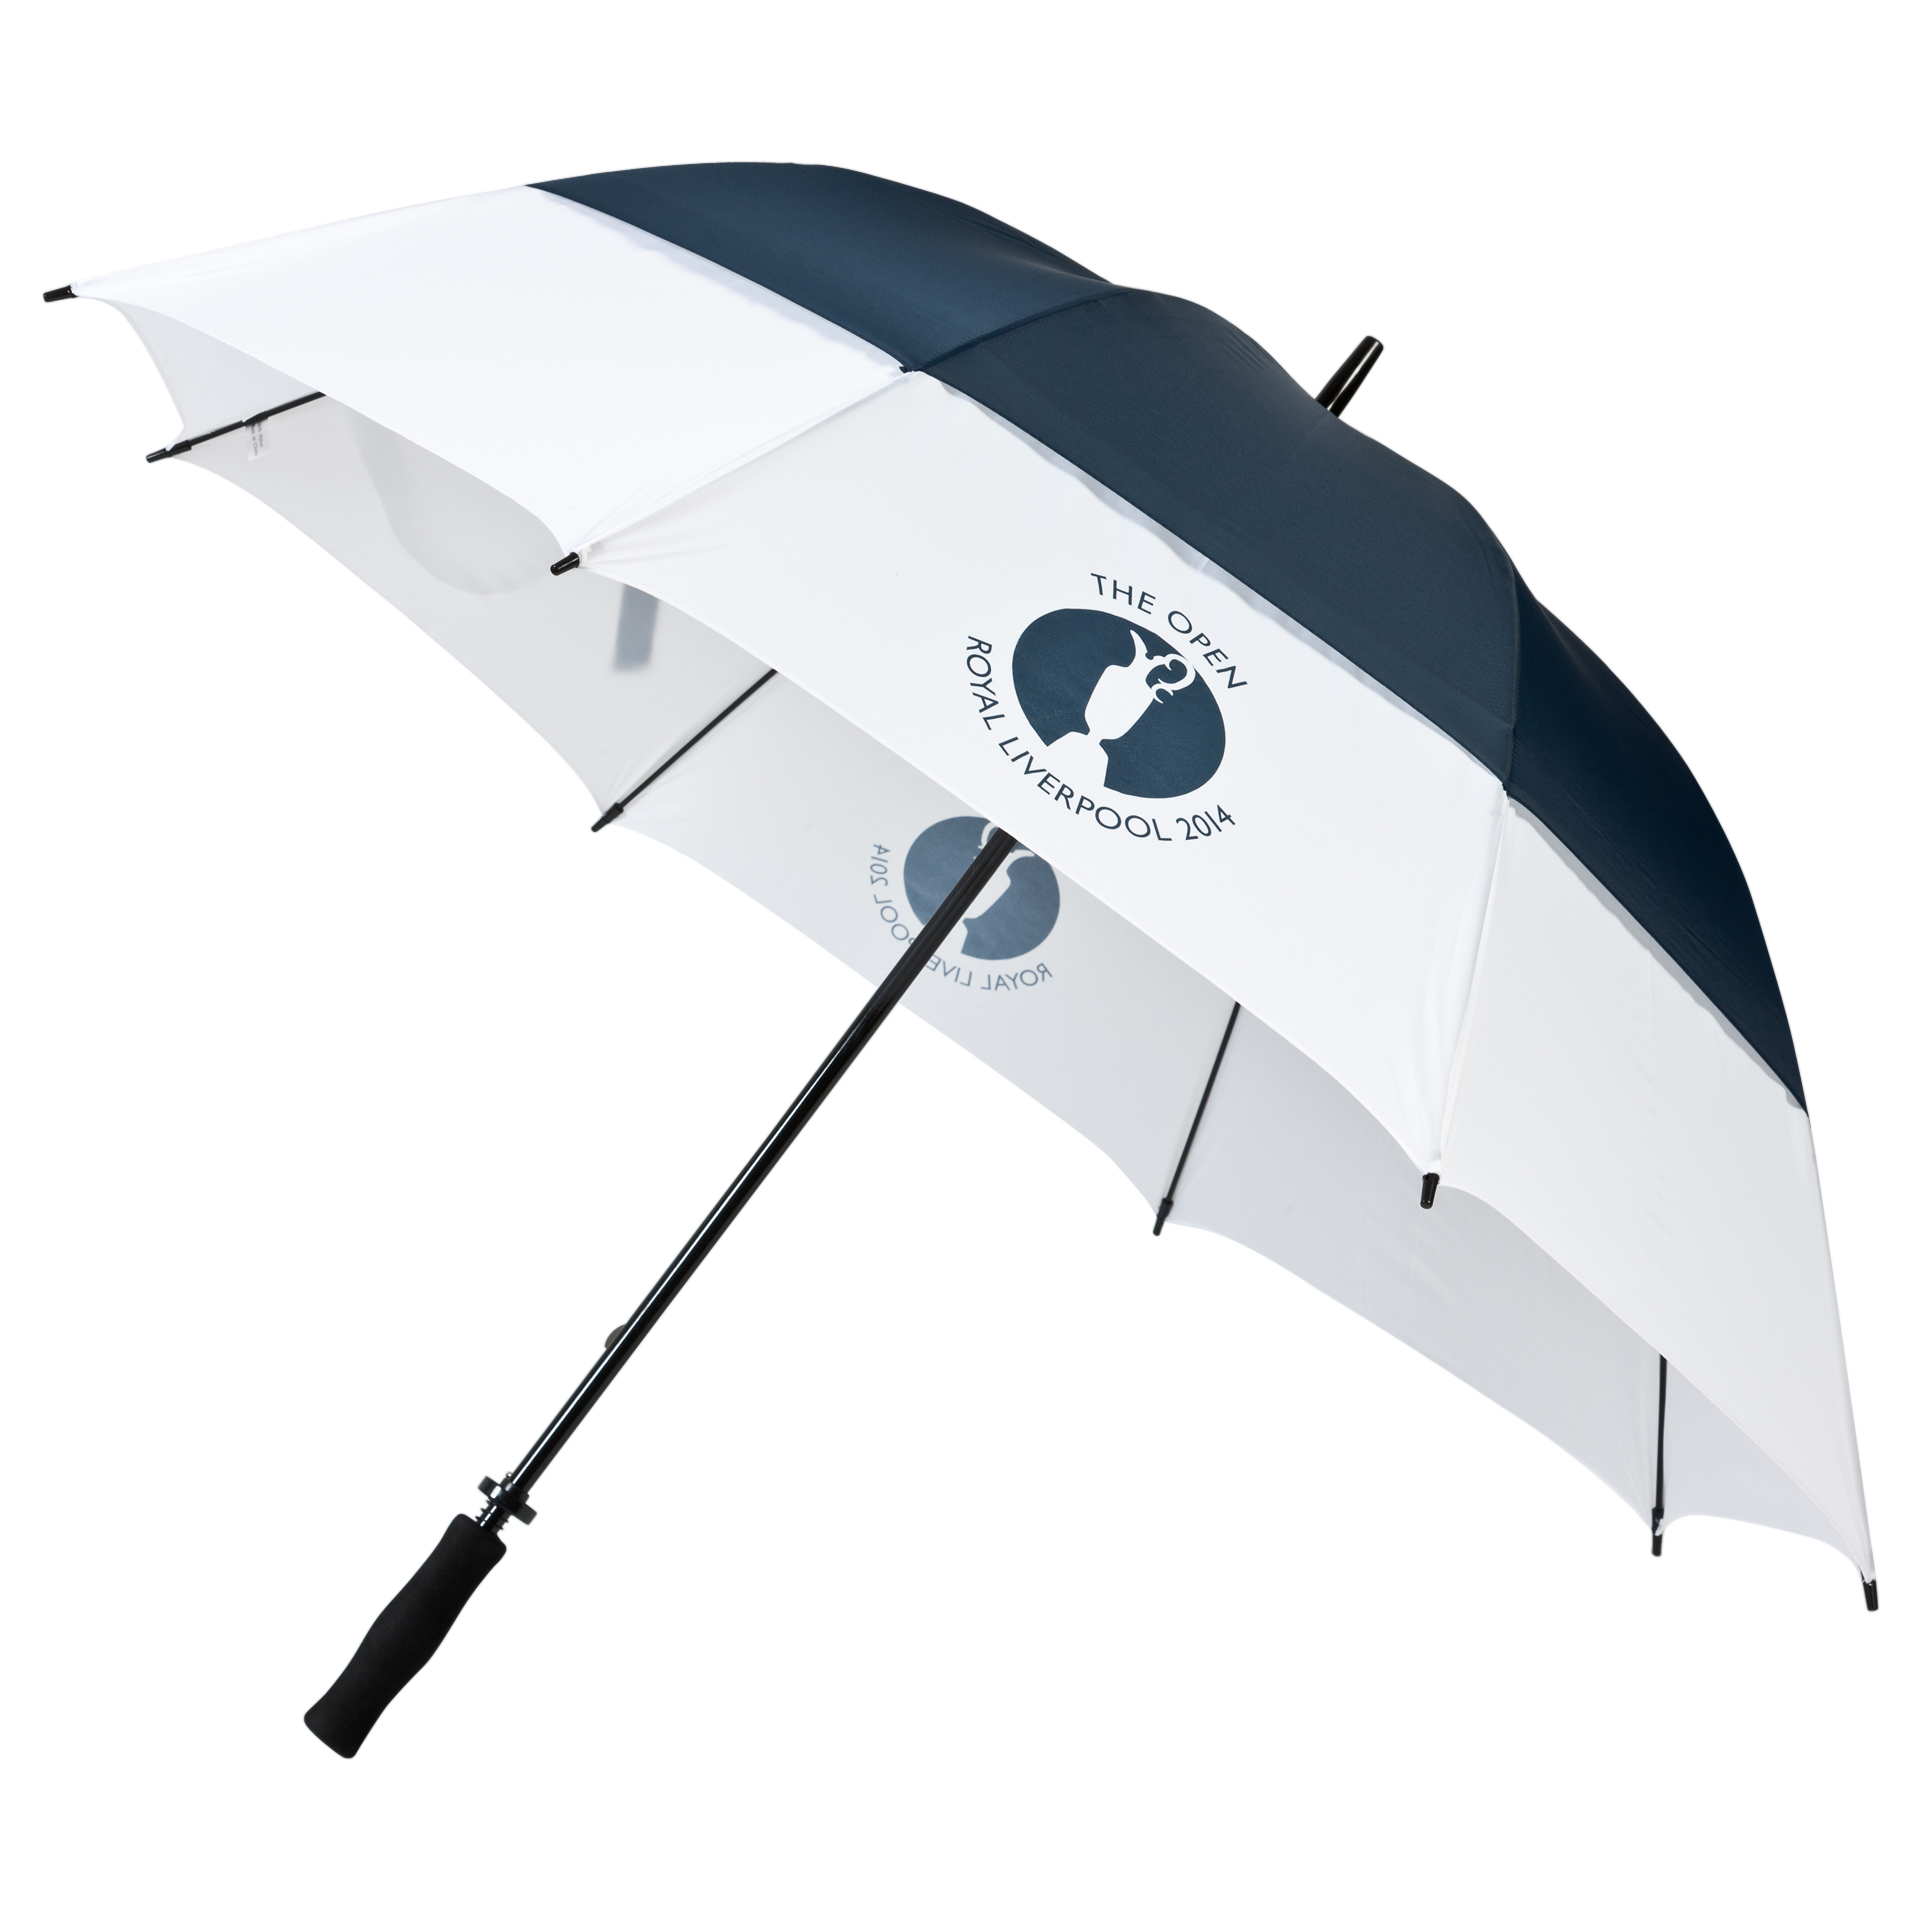 The Open Championship Royal Liverpool 2014 Umbrella